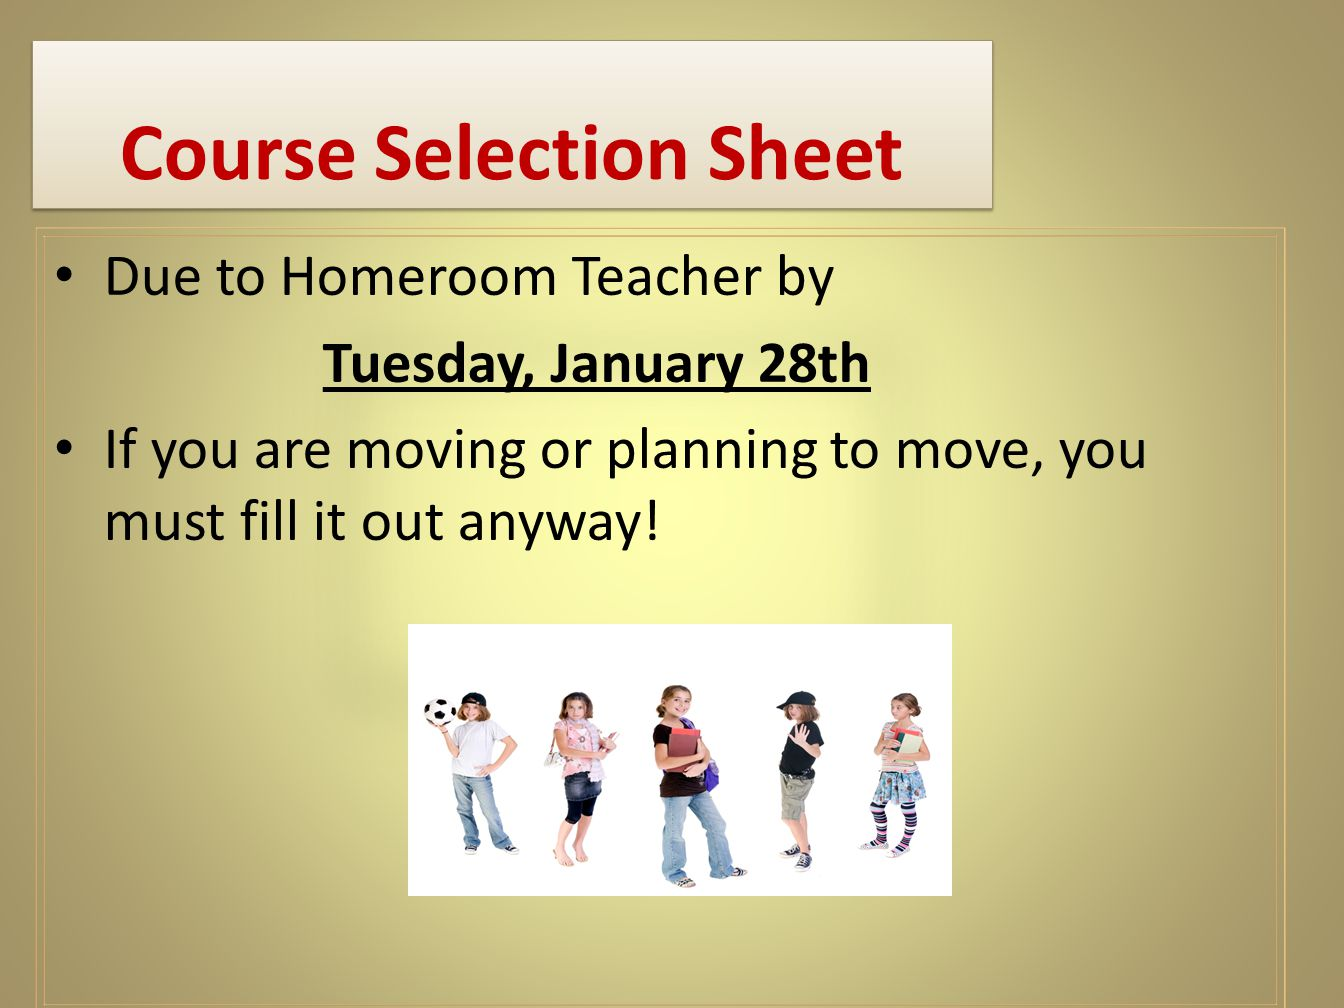 Course Selection Sheet Due to Homeroom Teacher by Tuesday, January 28th If you are moving or planning to move, you must fill it out anyway!